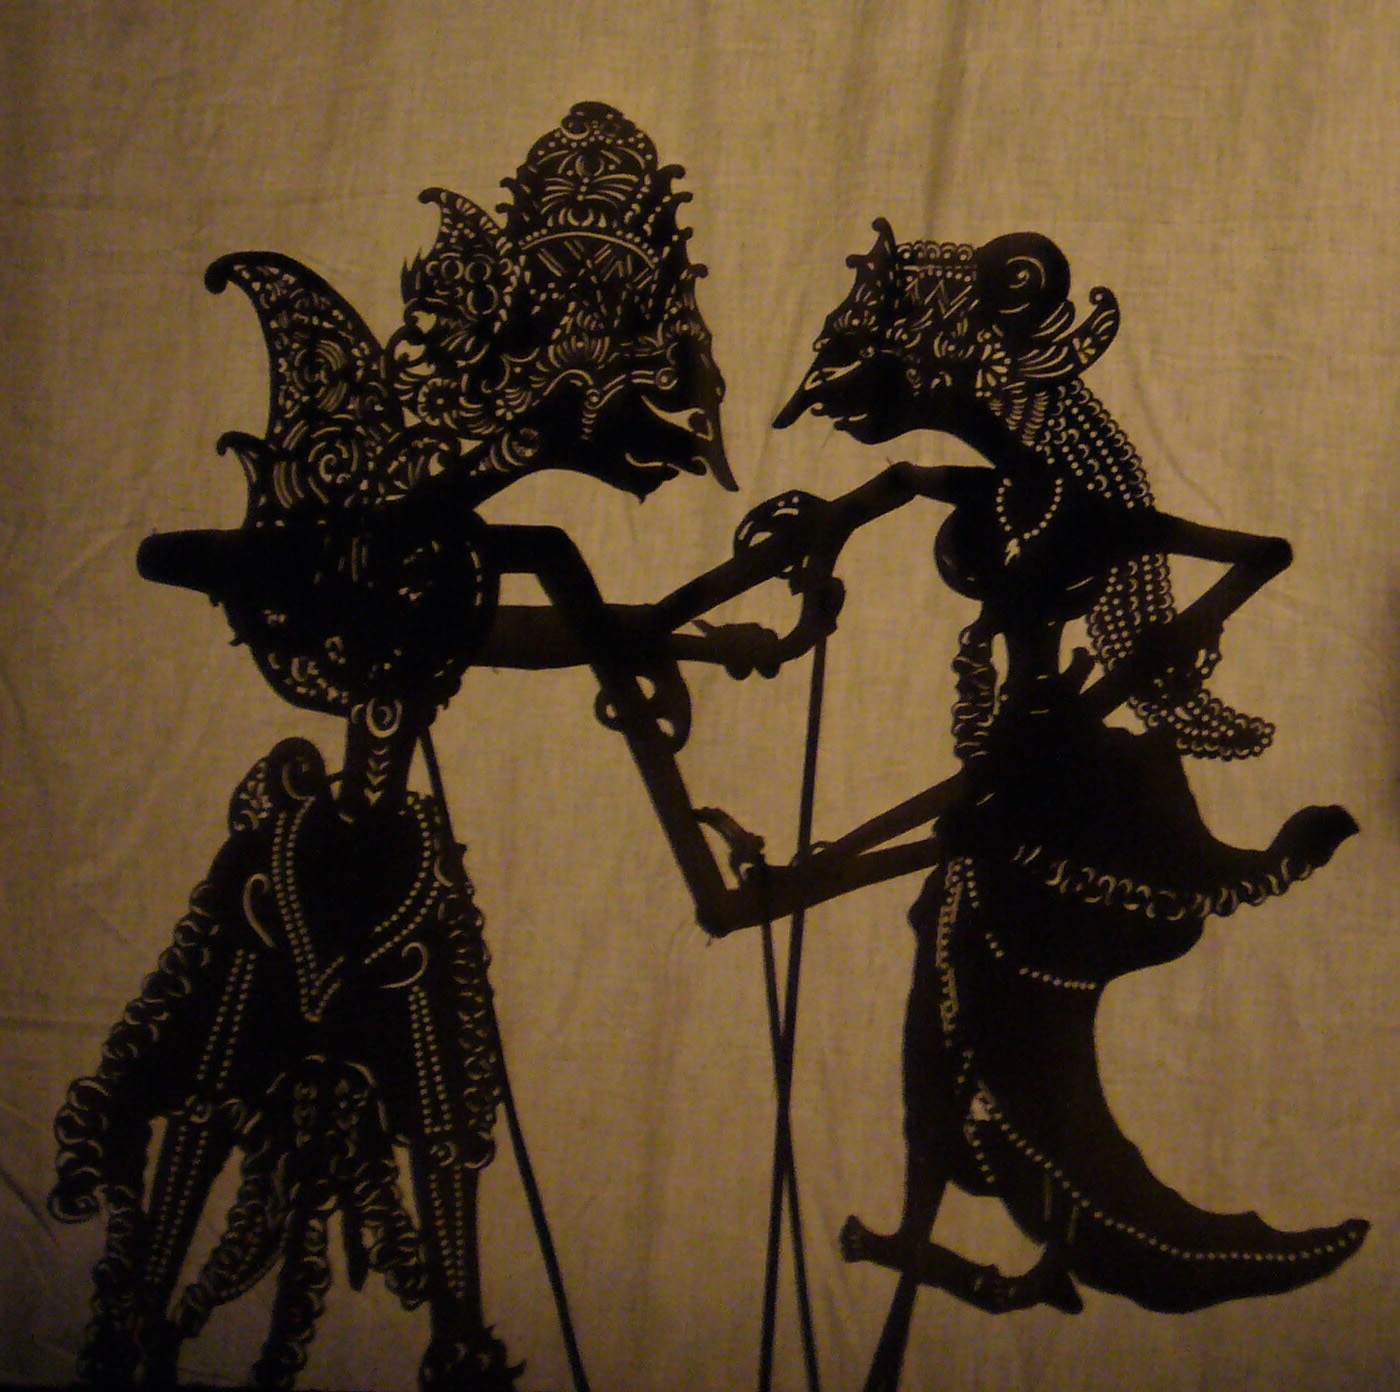 wayang kulit java indonesia shadow puppets manumayasa futurezet vendio